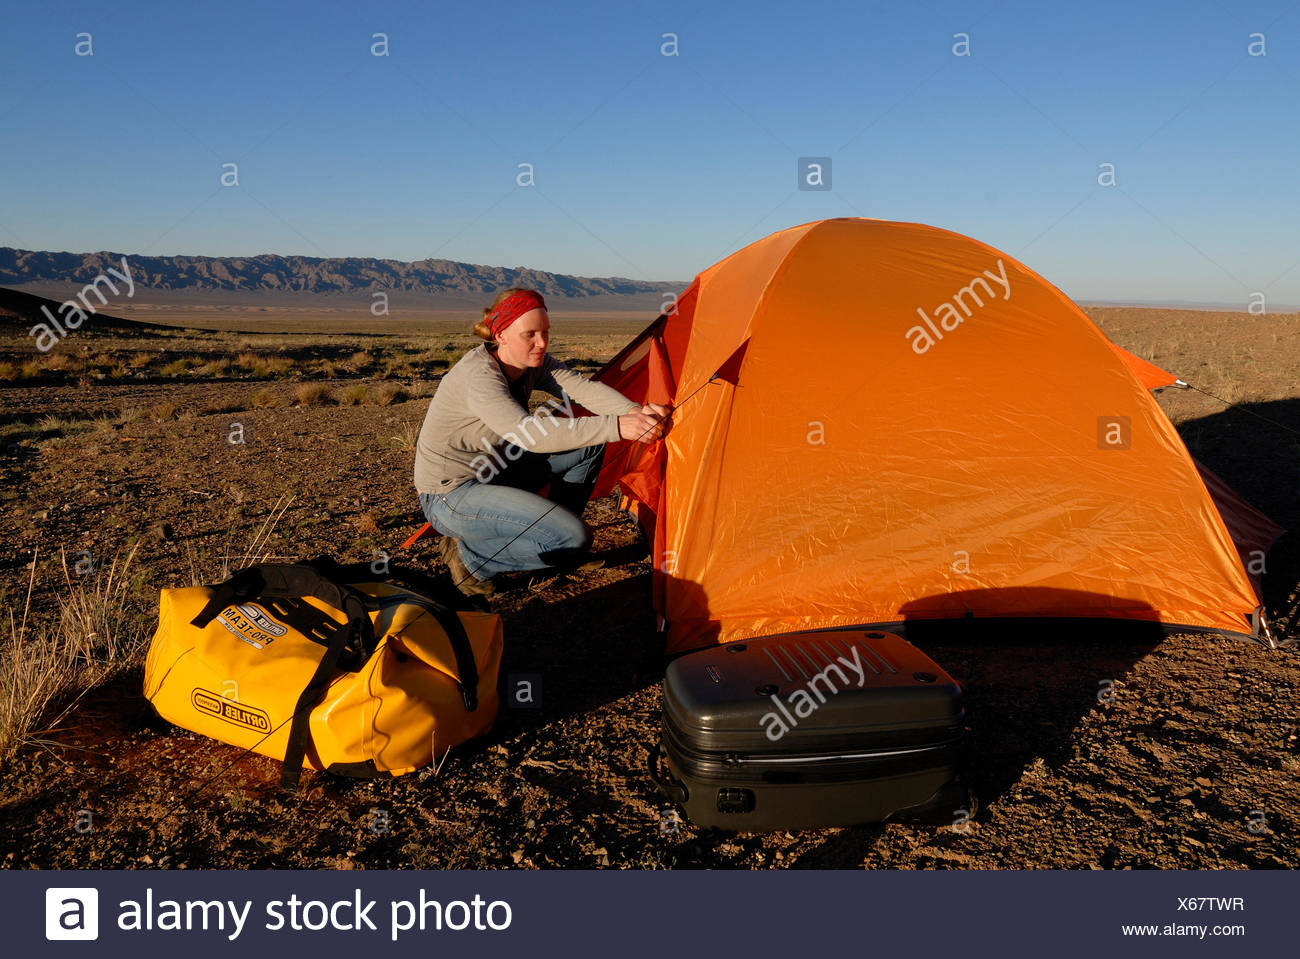 542fd860b56692 Young woman setting up camp with orange trekking tent and outdoor equipment  in the Gobi Desert